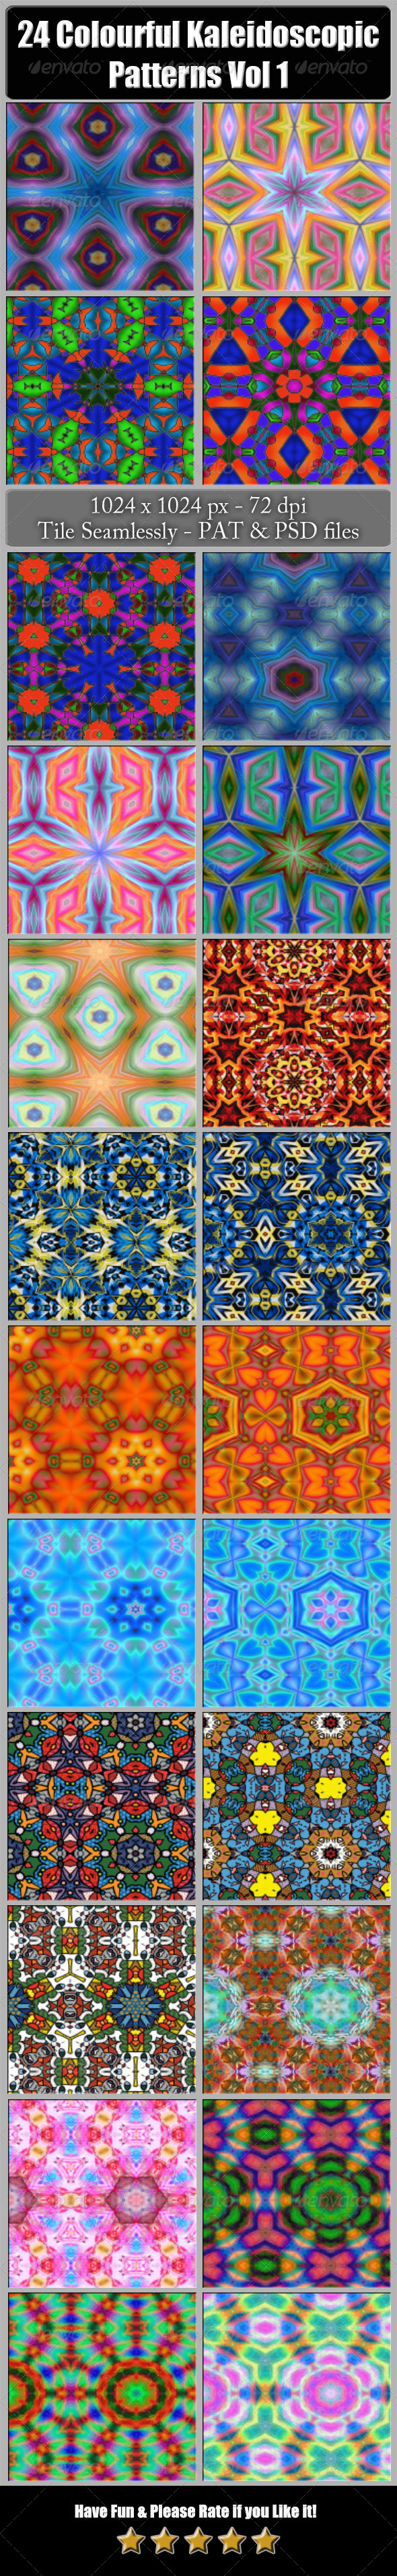 GraphicRiver 24 Colourful Kaleidoscopic Patterns Vol 1 6505786